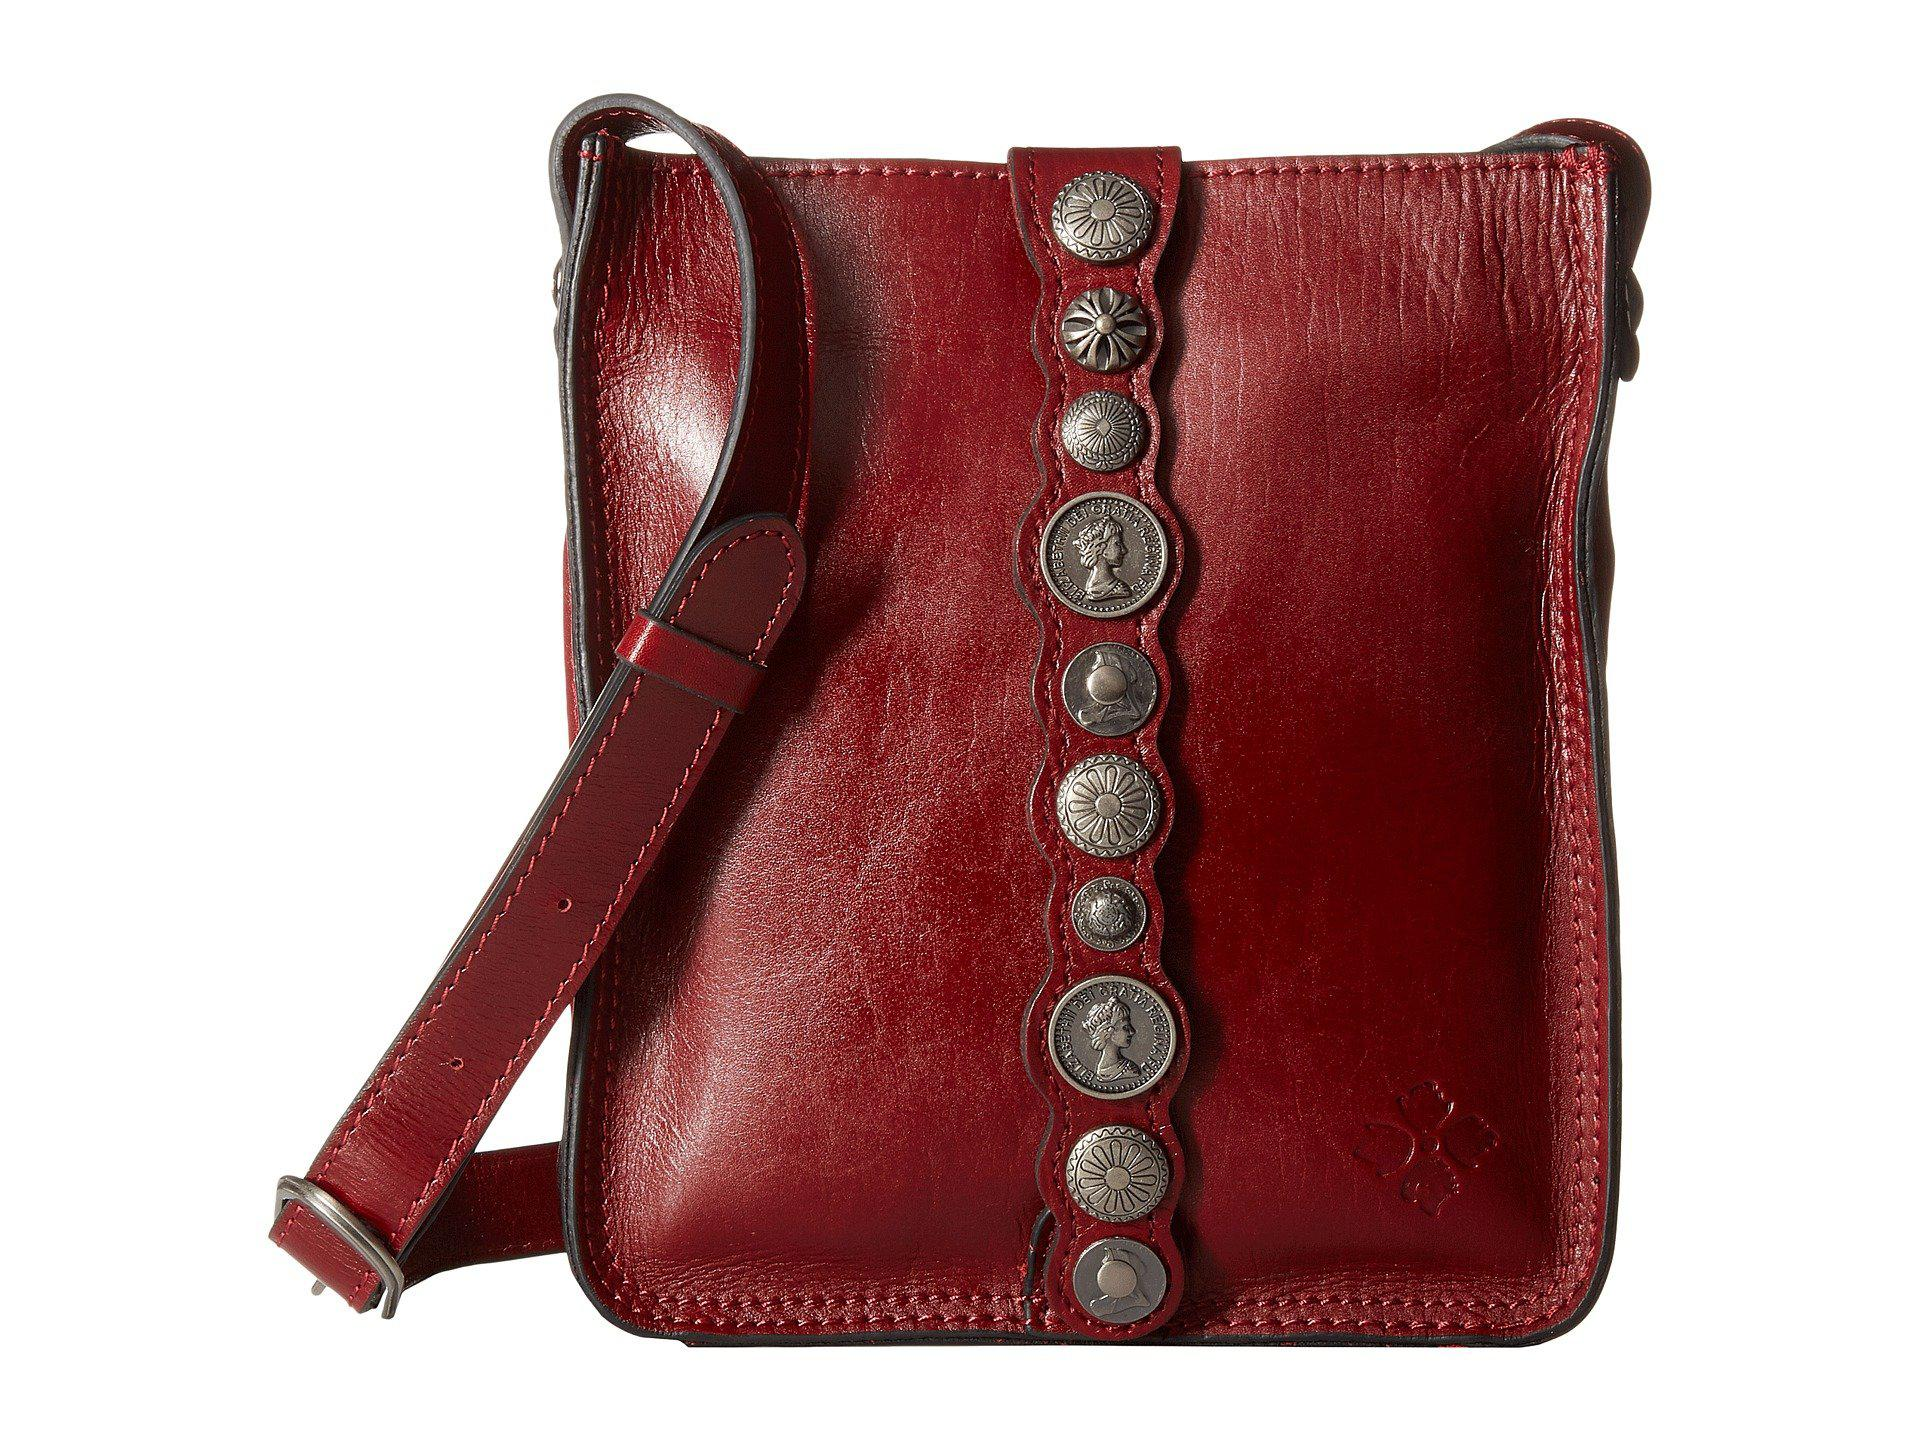 Lyst - Patricia Nash Venezia Crossbody in Red - Save 12% 8bd0cb46d0a5d